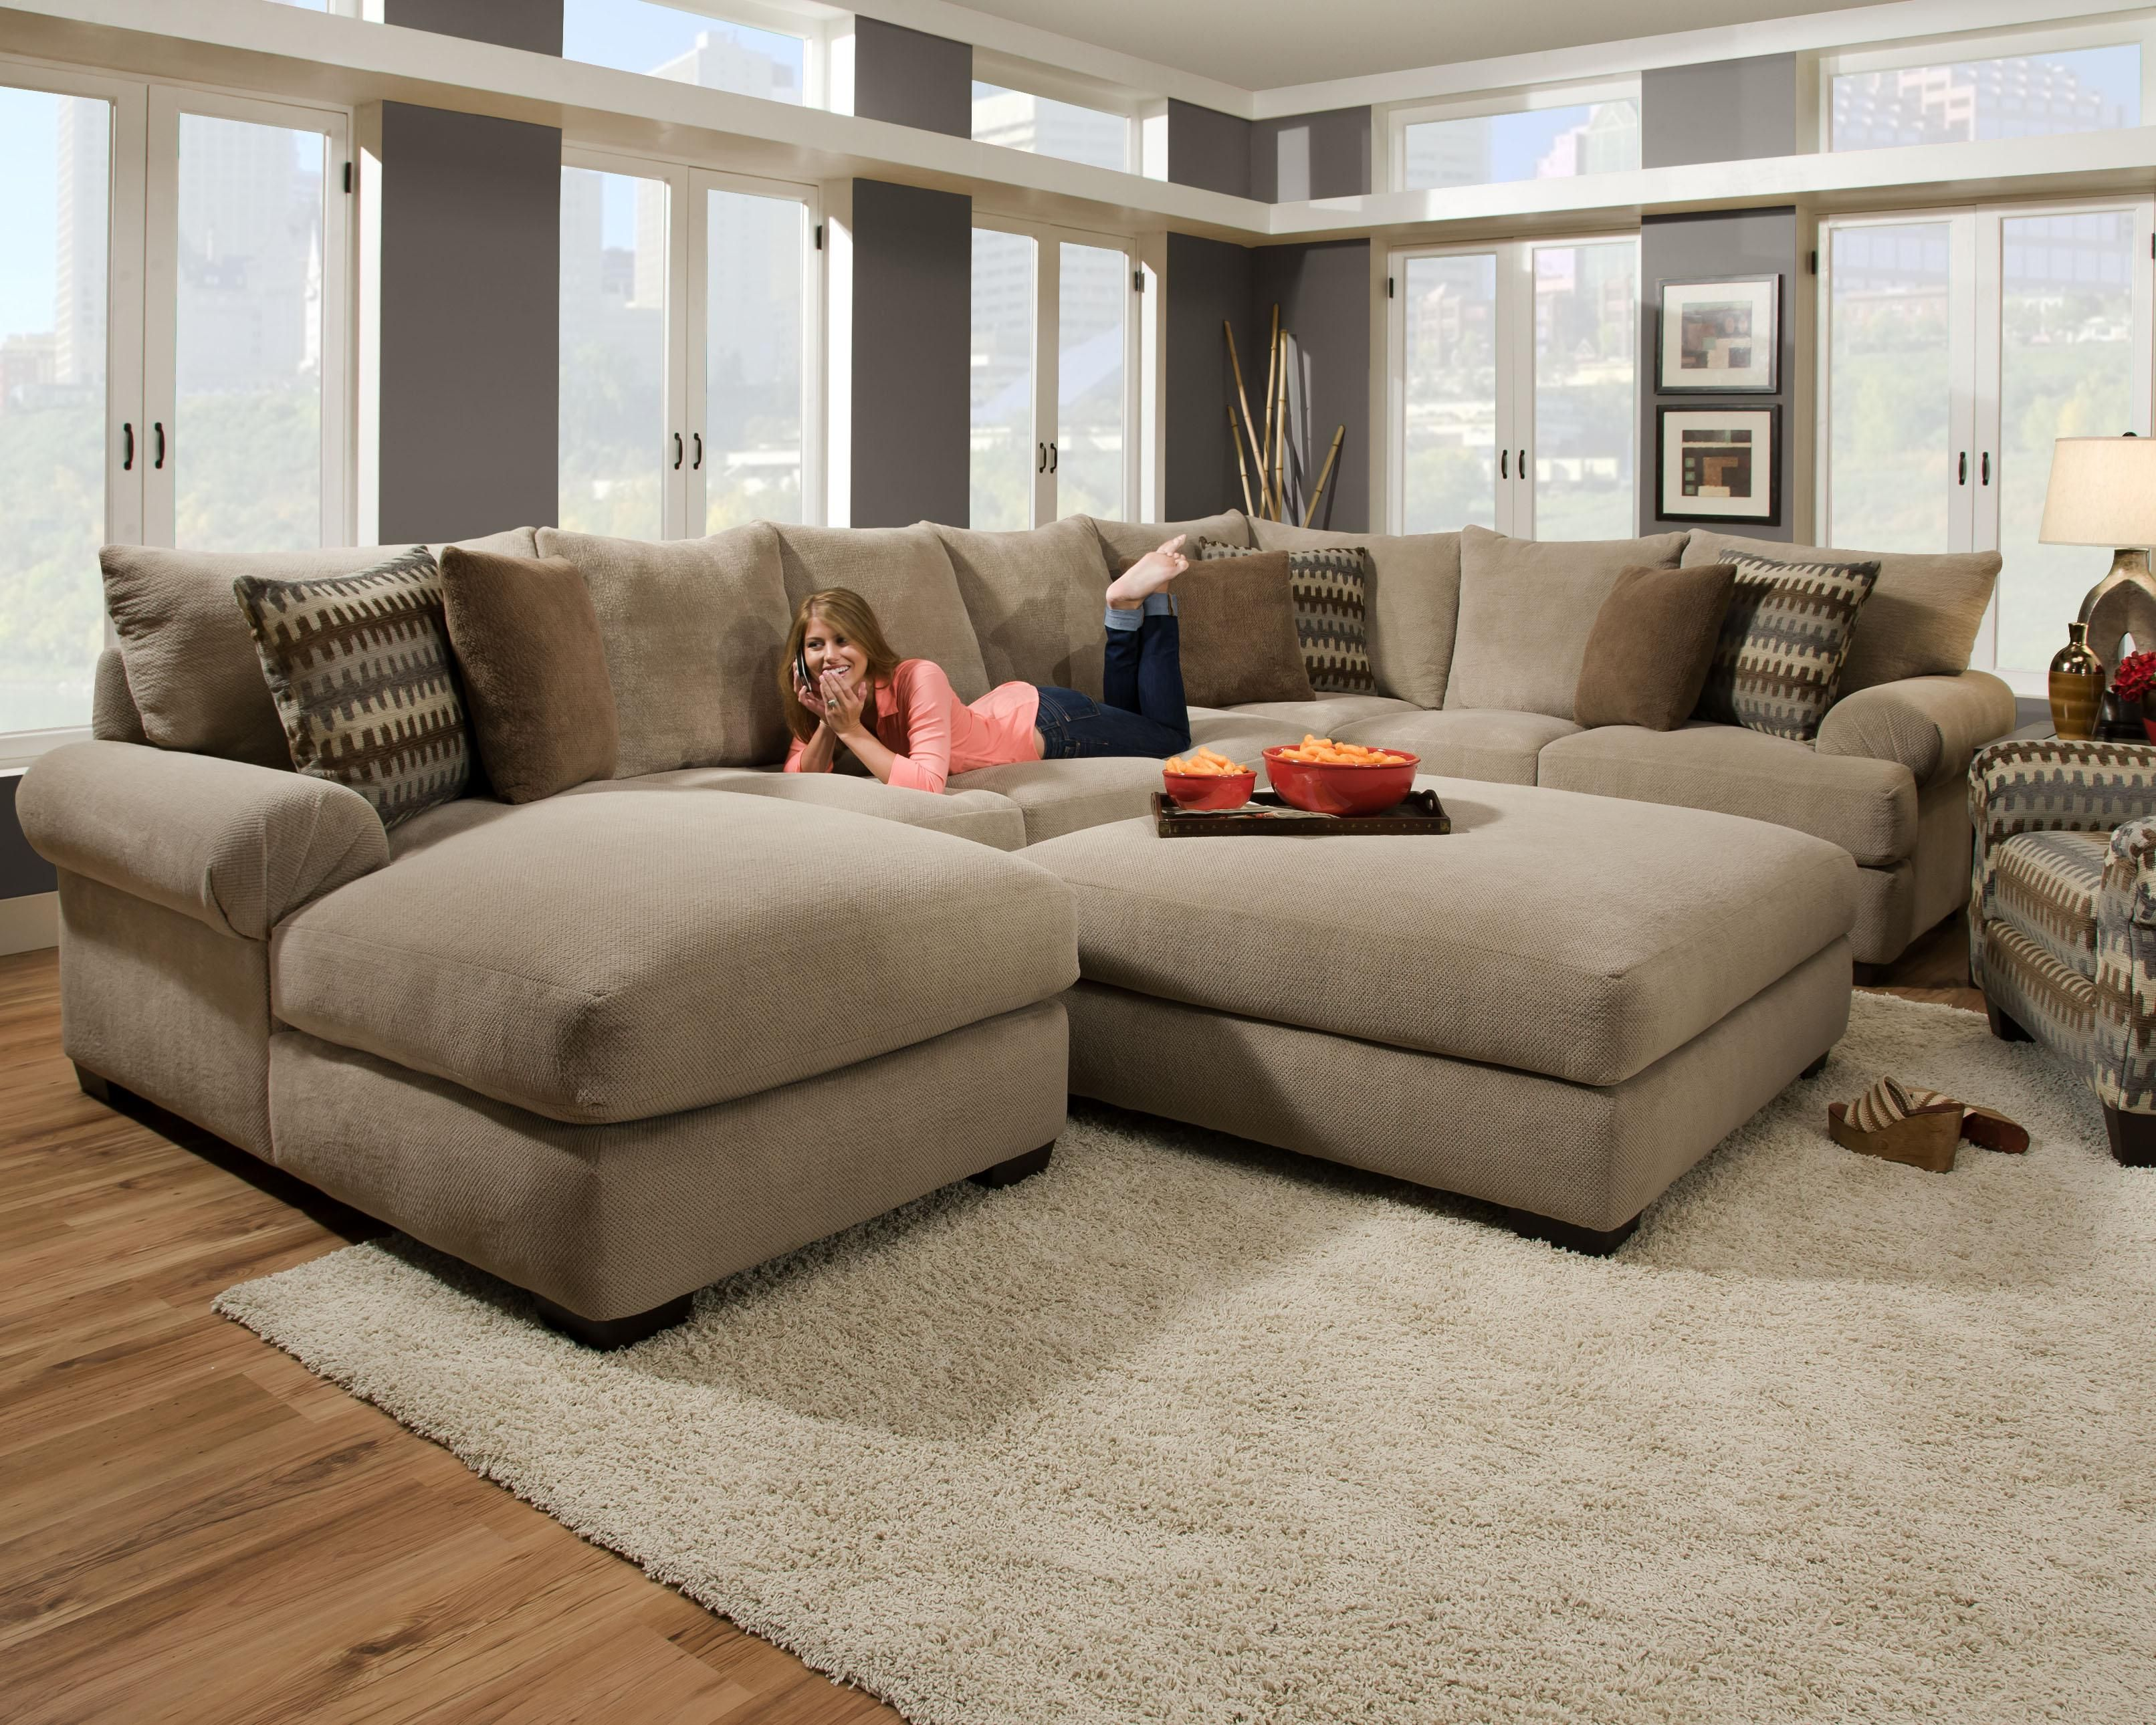 Nice Oversized Couch Epic Oversized Couch 78 For Your